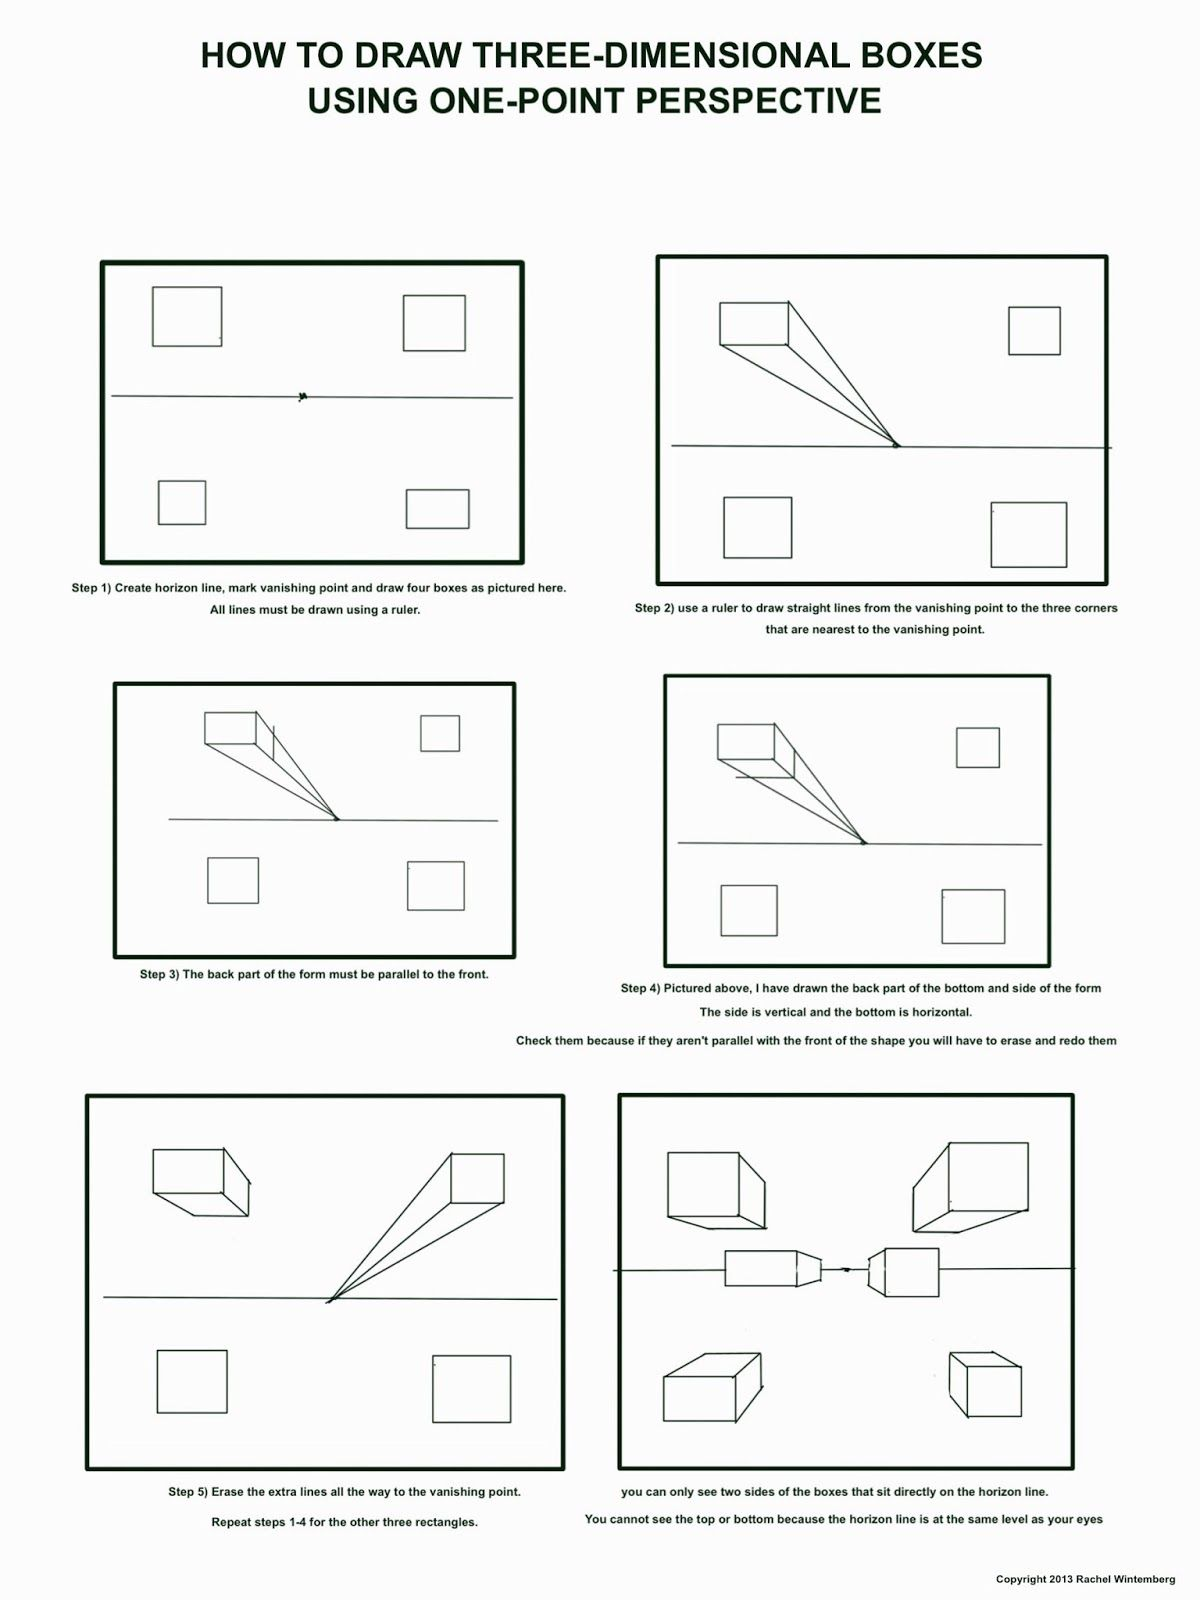 The Helpful Art Teacher Fun With One Point Perspective Boxes And Other Geometric Forms